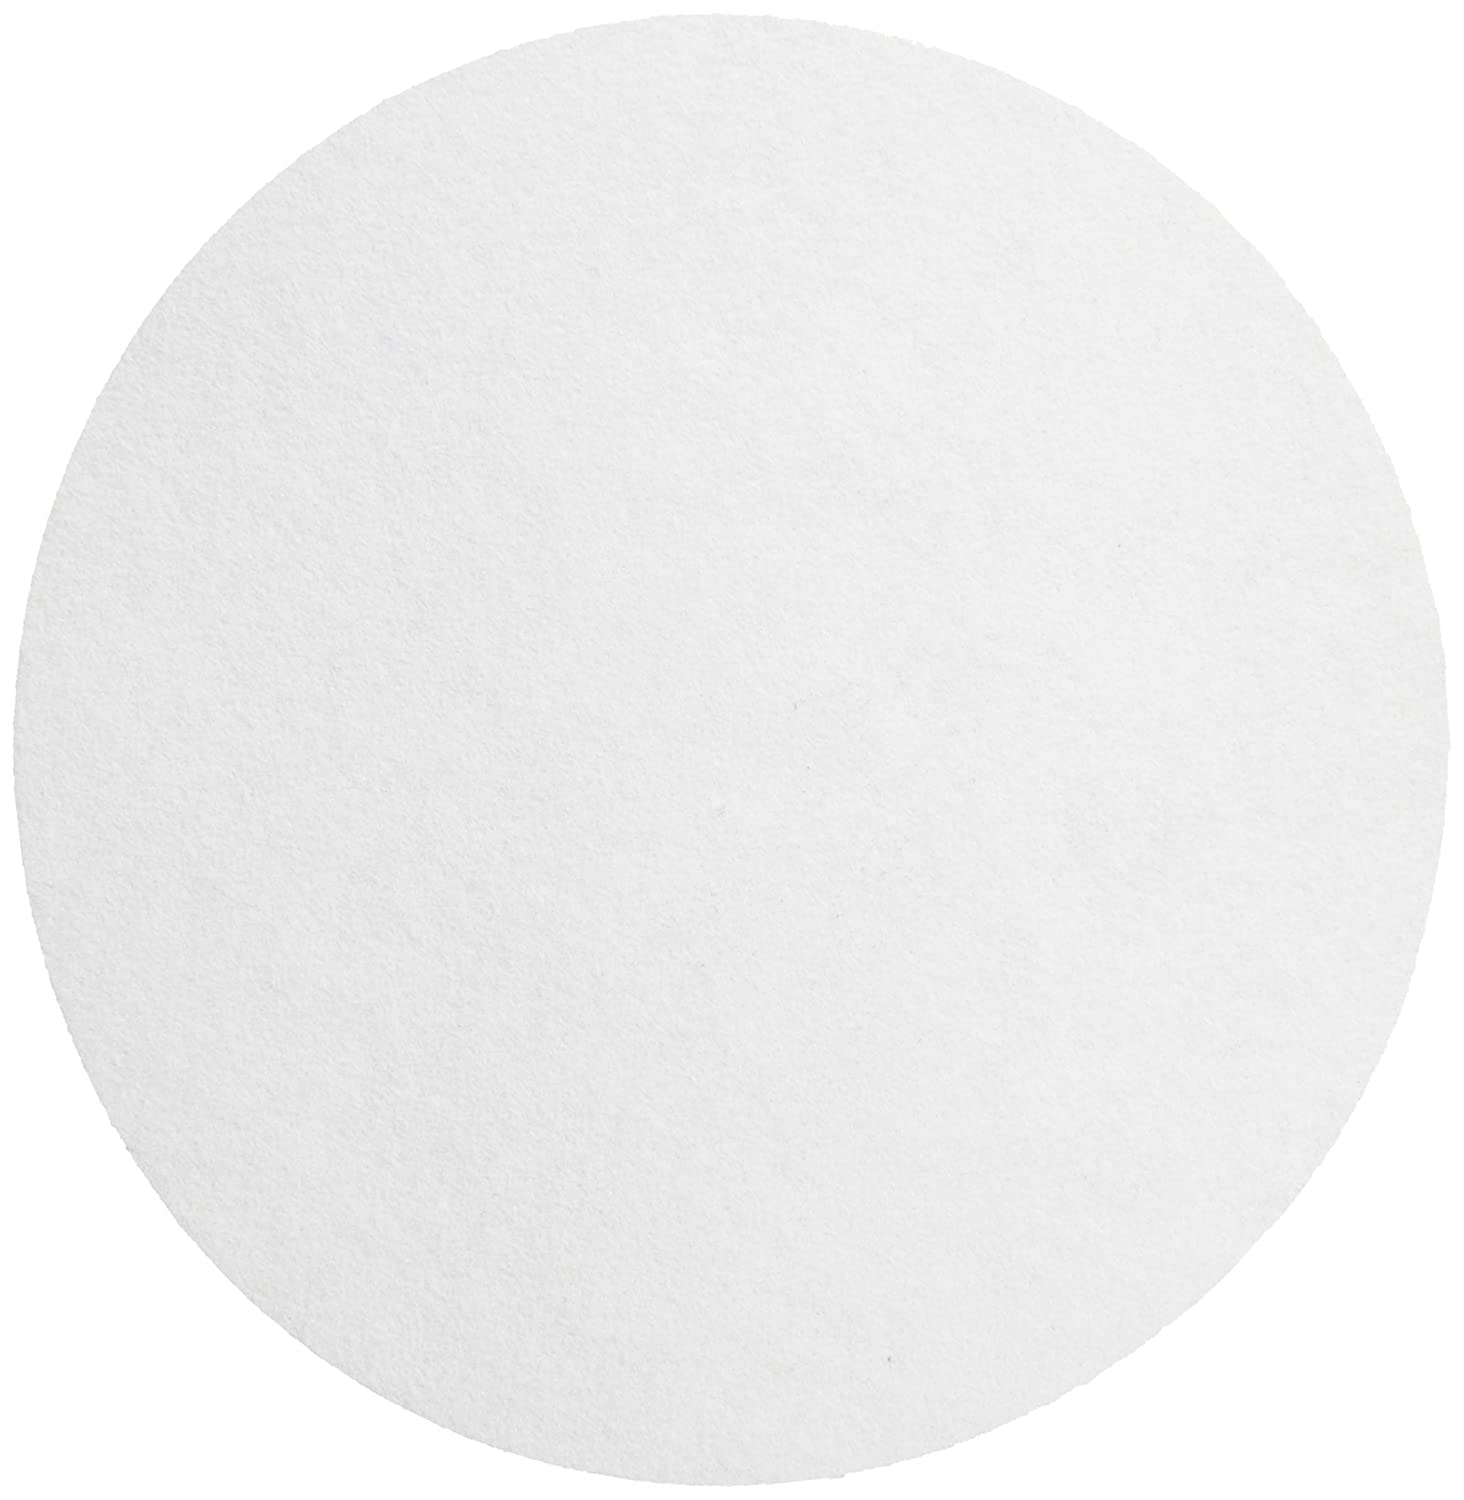 1.27cm Diameter Whatman 1440-012 Ashless Quantitative Filter Paper Pack of 400 8 Micron Grade 40 F1220-03